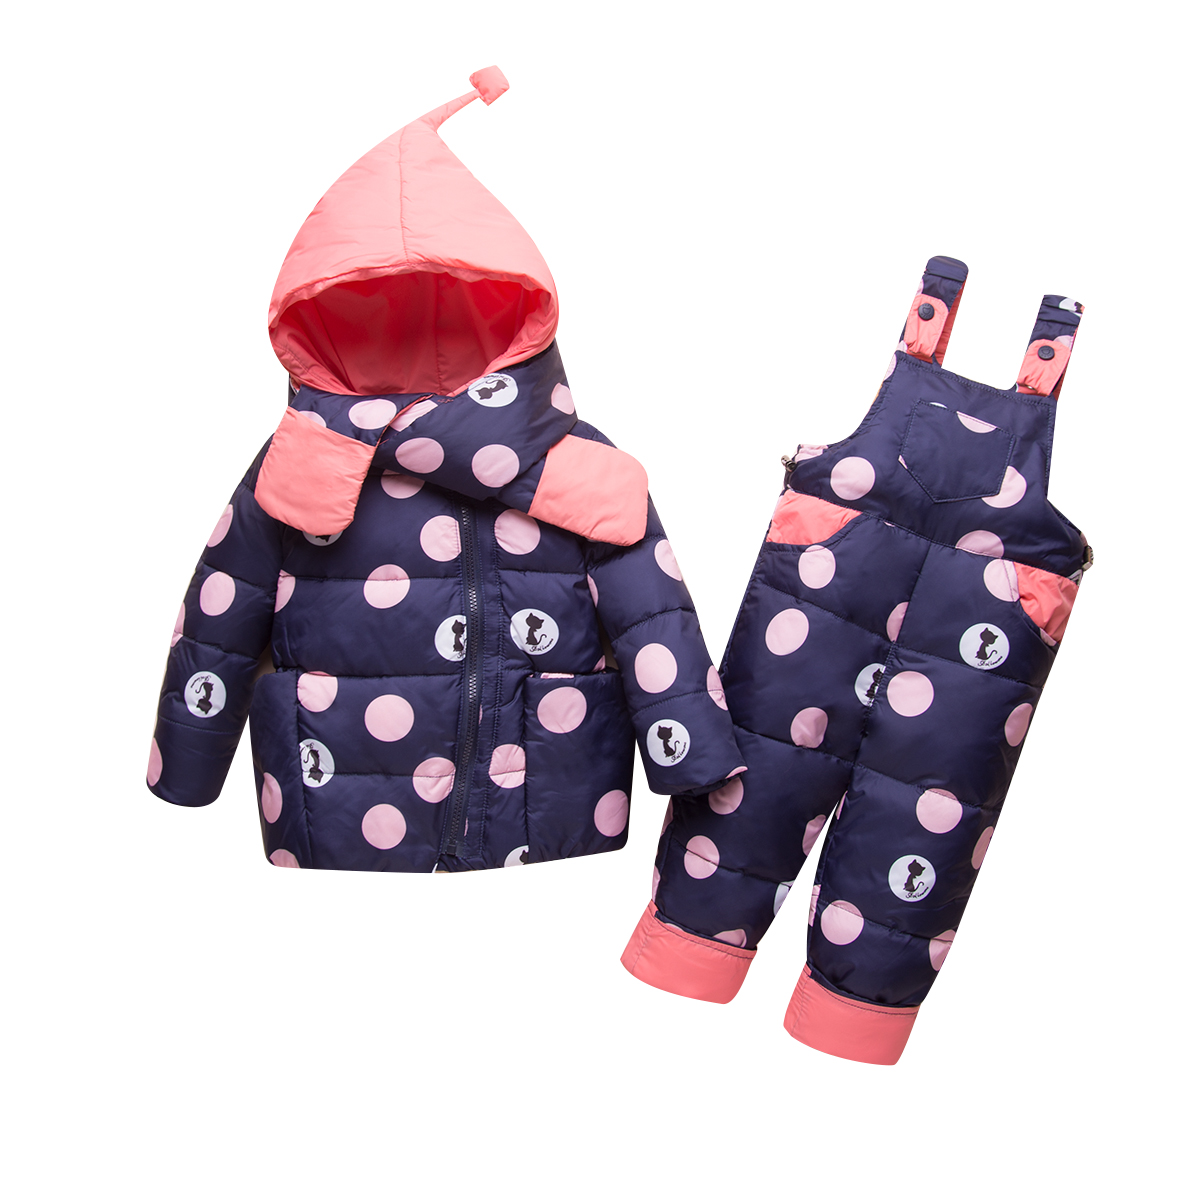 купить Mioigee 2018 Winter Children Clothing Sets Warm Duck Down Jackets Clothing Sets Baby Down Sports Suit for Girls Kids Suits недорого